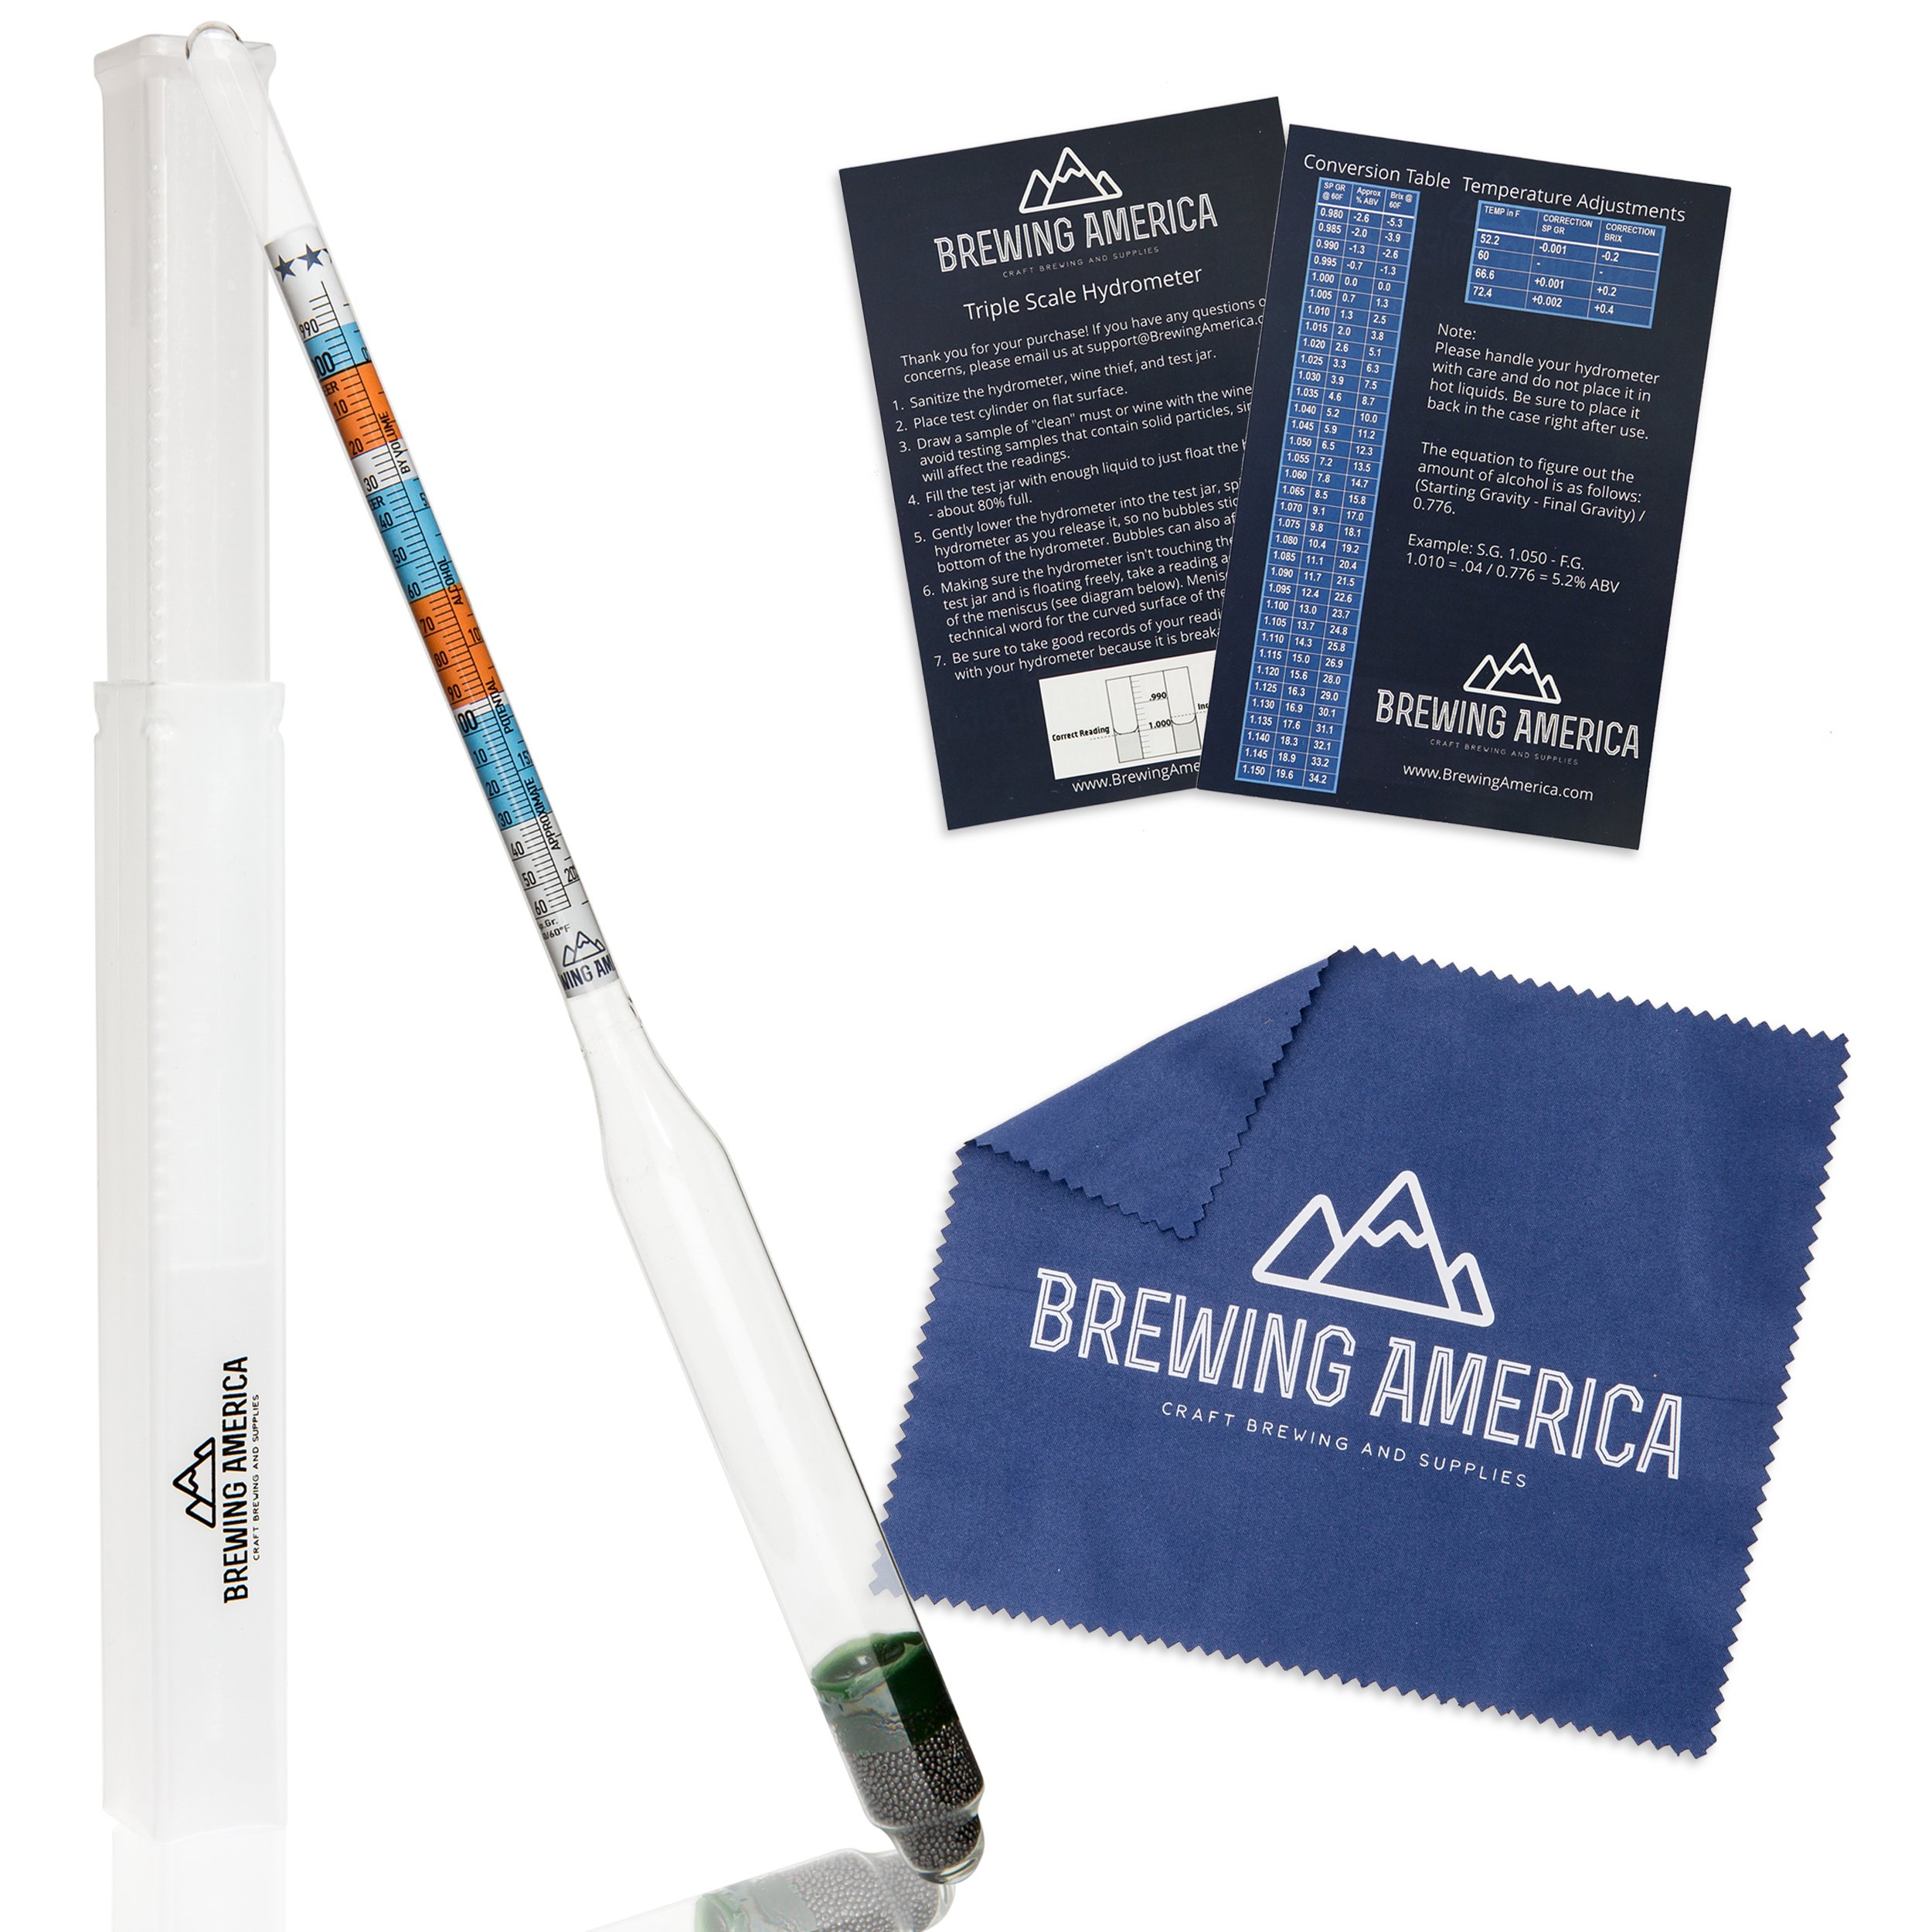 Specific Gravity Hydrometer Alcohol Tester - for Brewing ABV Testing: Beer, Wine, Cider, Mead Homebrew Fermented Beverages - Triple Scale Hydrometer by Brewing America